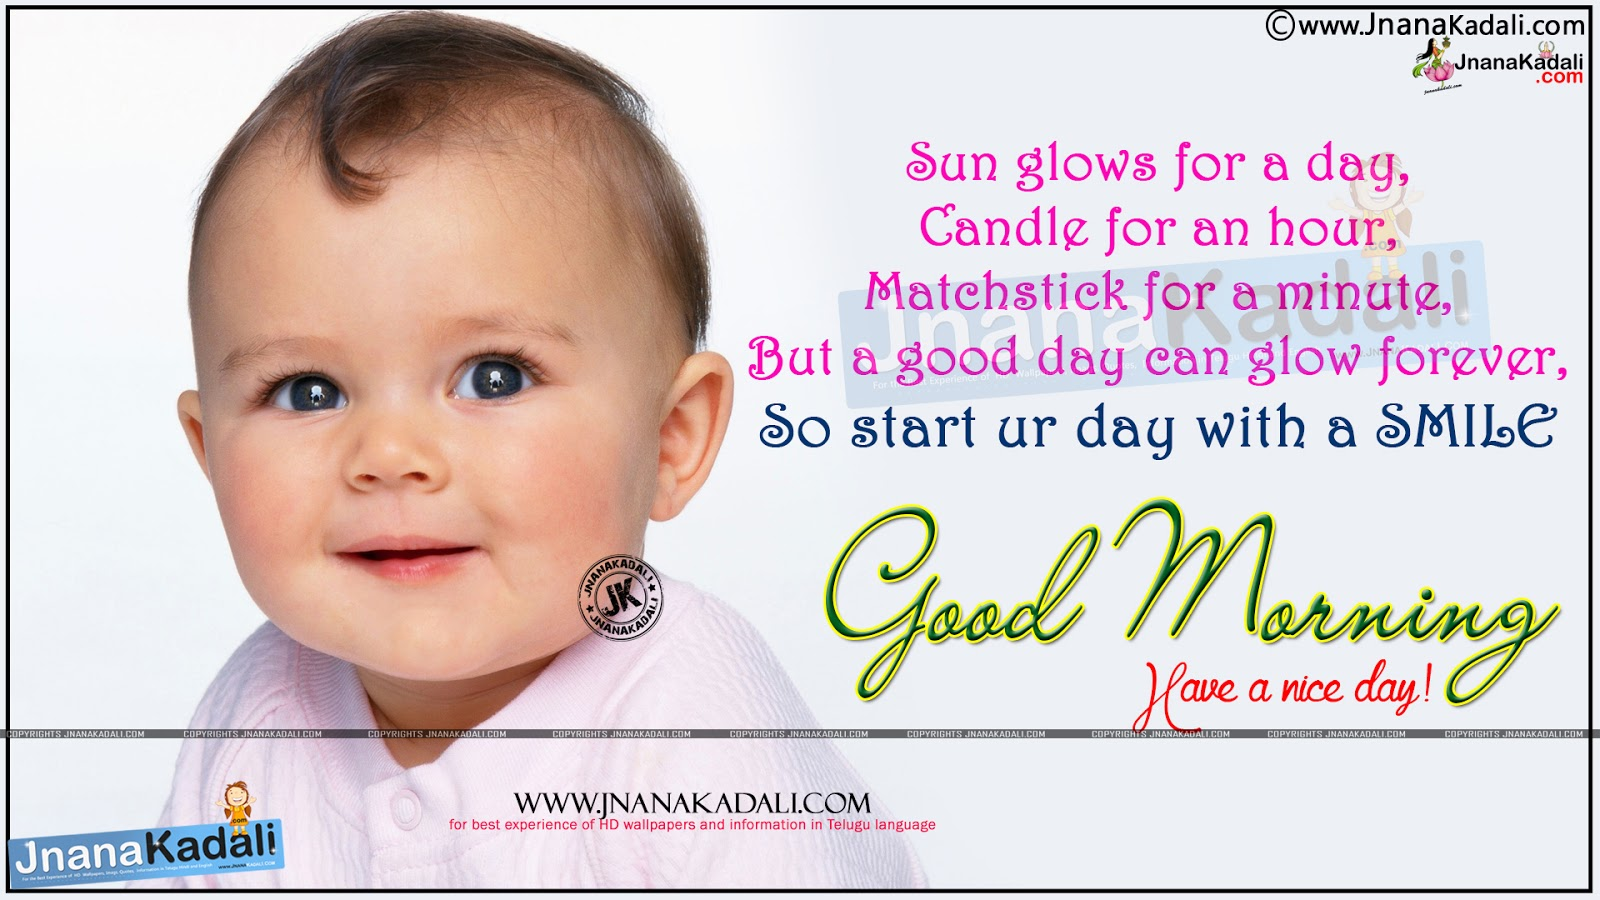 Early morning wishes and good morning quotes with cute baby hd new good morning nature quotes online famous happy morning quotes pics good morning nature m4hsunfo